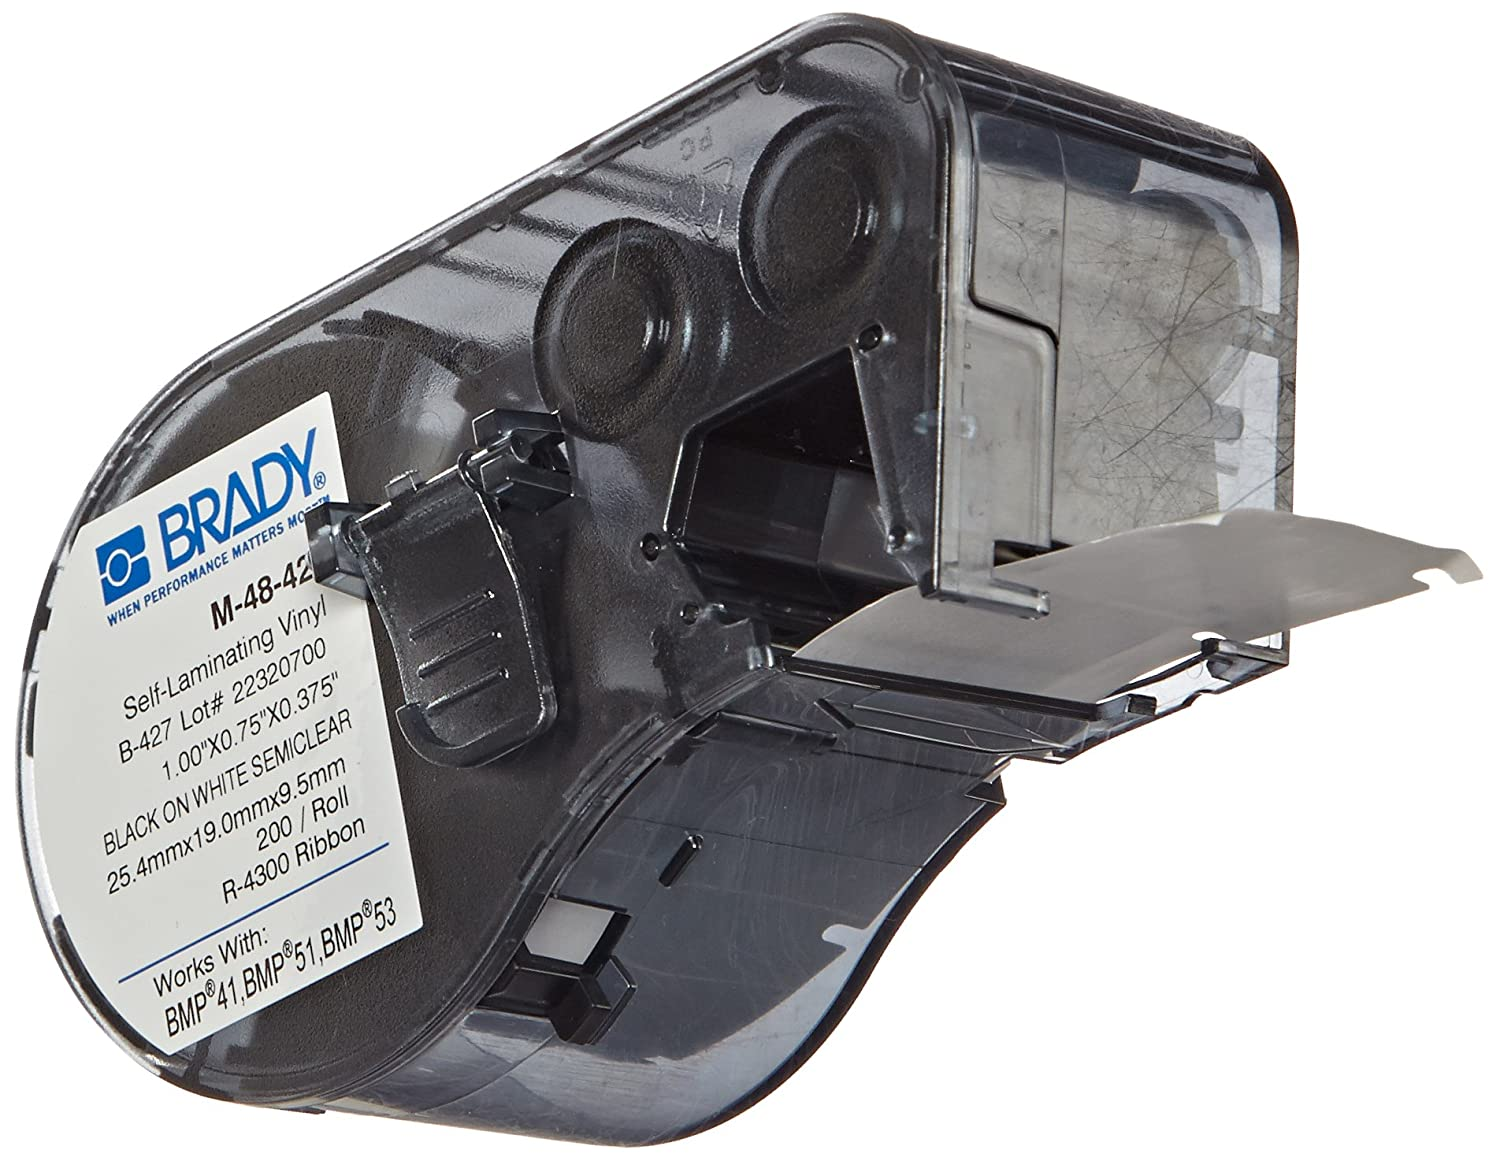 Brady Self-Laminating Vinyl Label Tape - Black on White, Translucent Tape - Compatible with BMP41, BMP51, and BMP53 Label Makers - 1' Height.375' Width (M-48-427) and BMP53 Label Makers - 1 Height.375 Width (M-48-427)